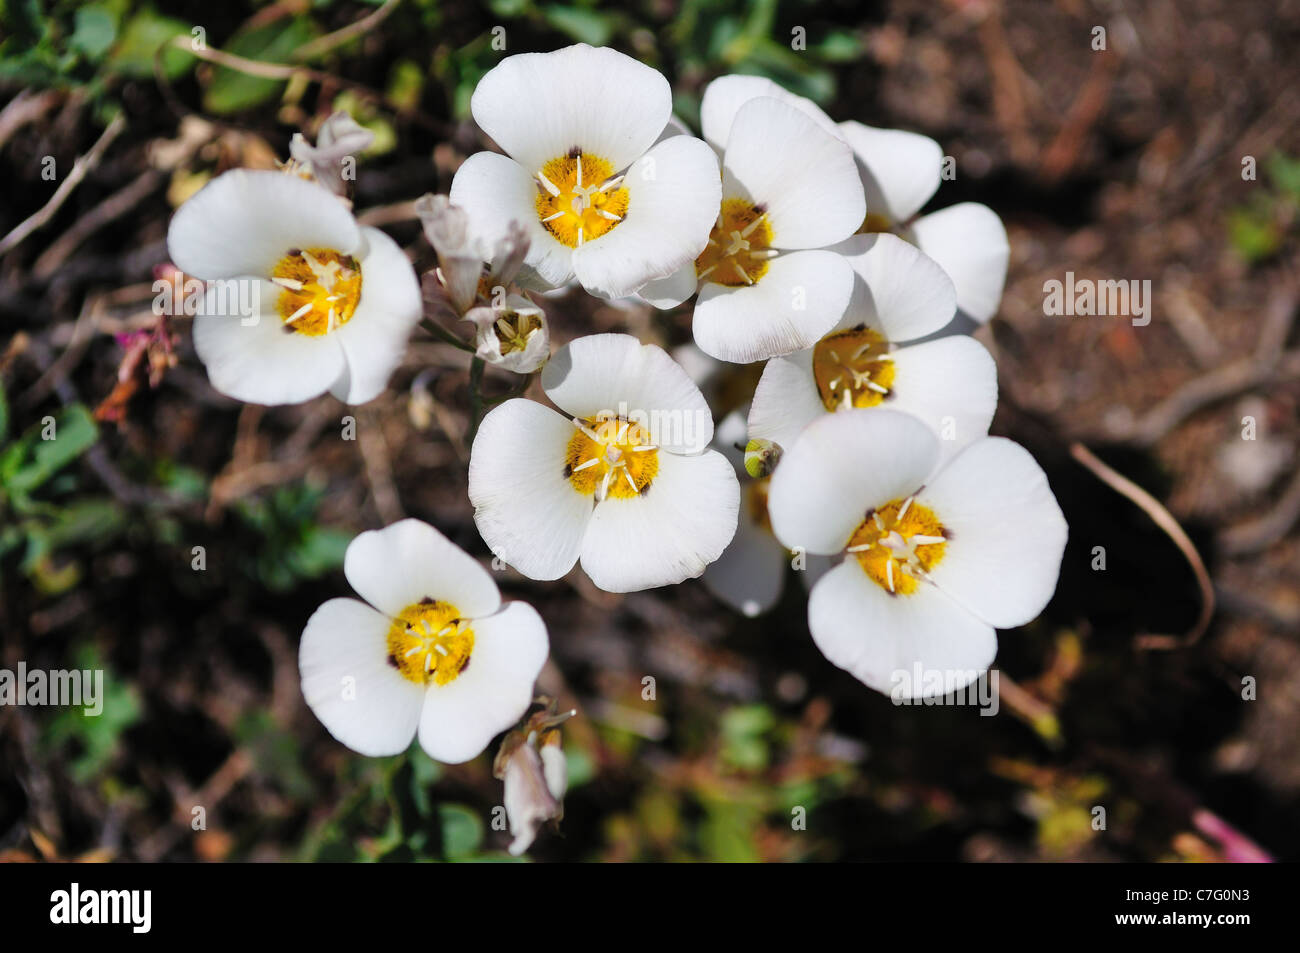 A Cluster Of Mariposa Lilies Blooming In The Wild Yosemite National